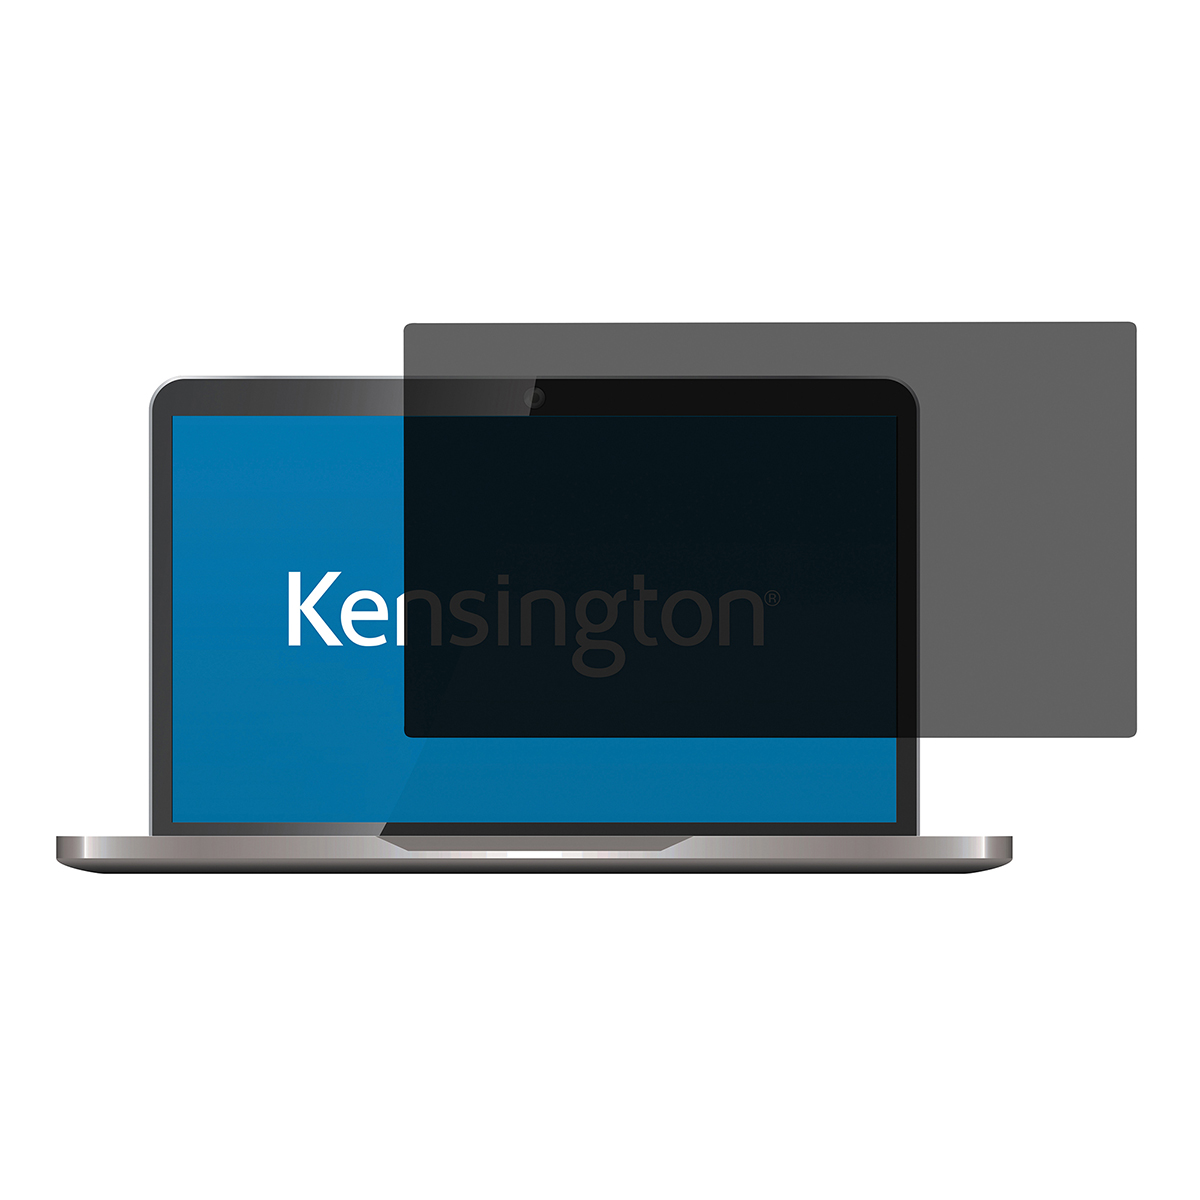 Kensington 626379 Privacy Filter 2 way adhesive for HP Elite X2 1012